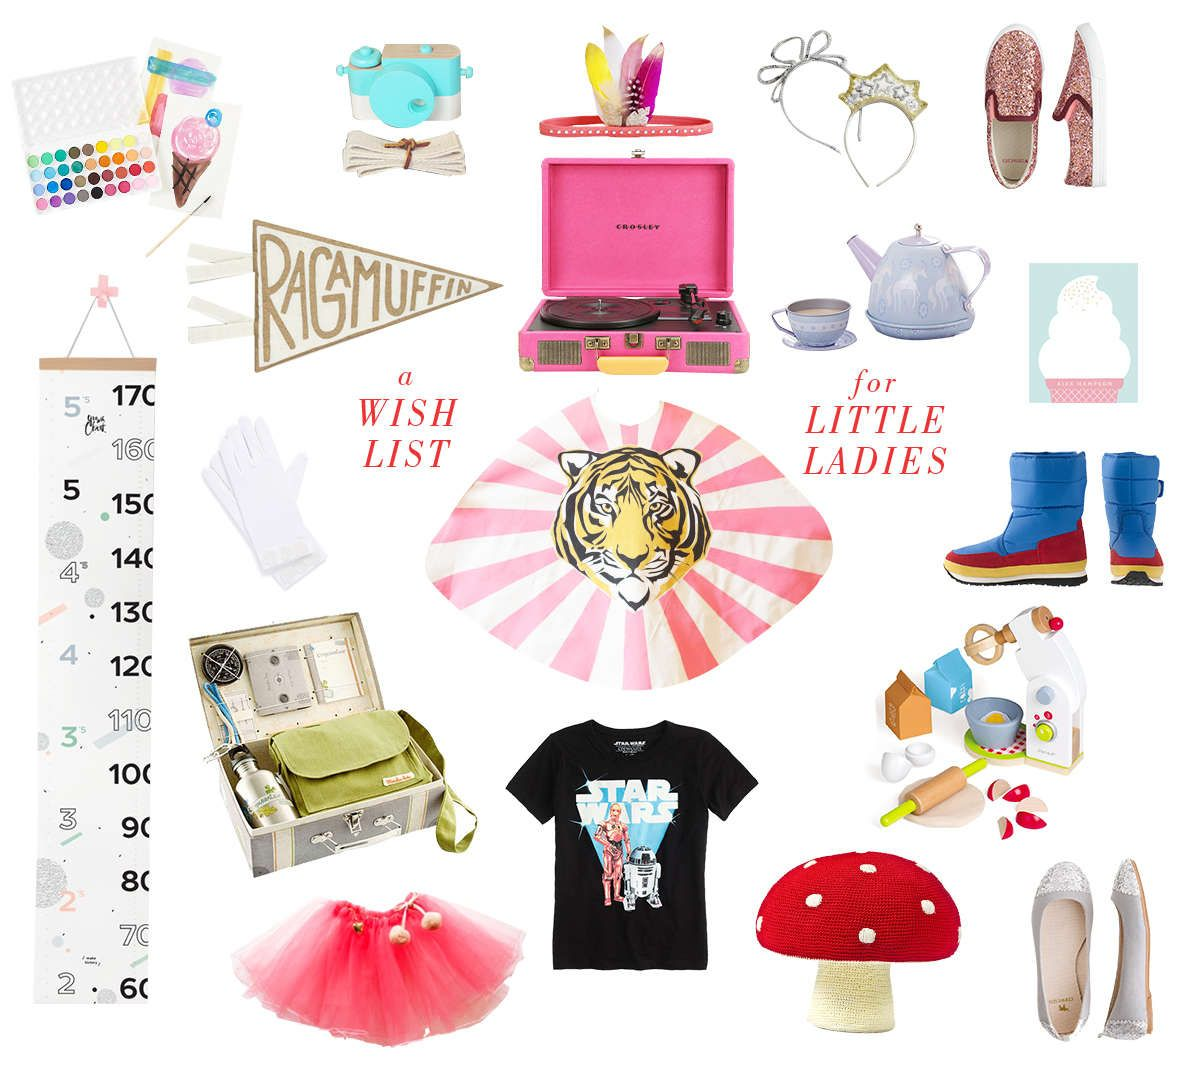 Nursery Décor For The Grown Ups: A Wish List For Little Ladies